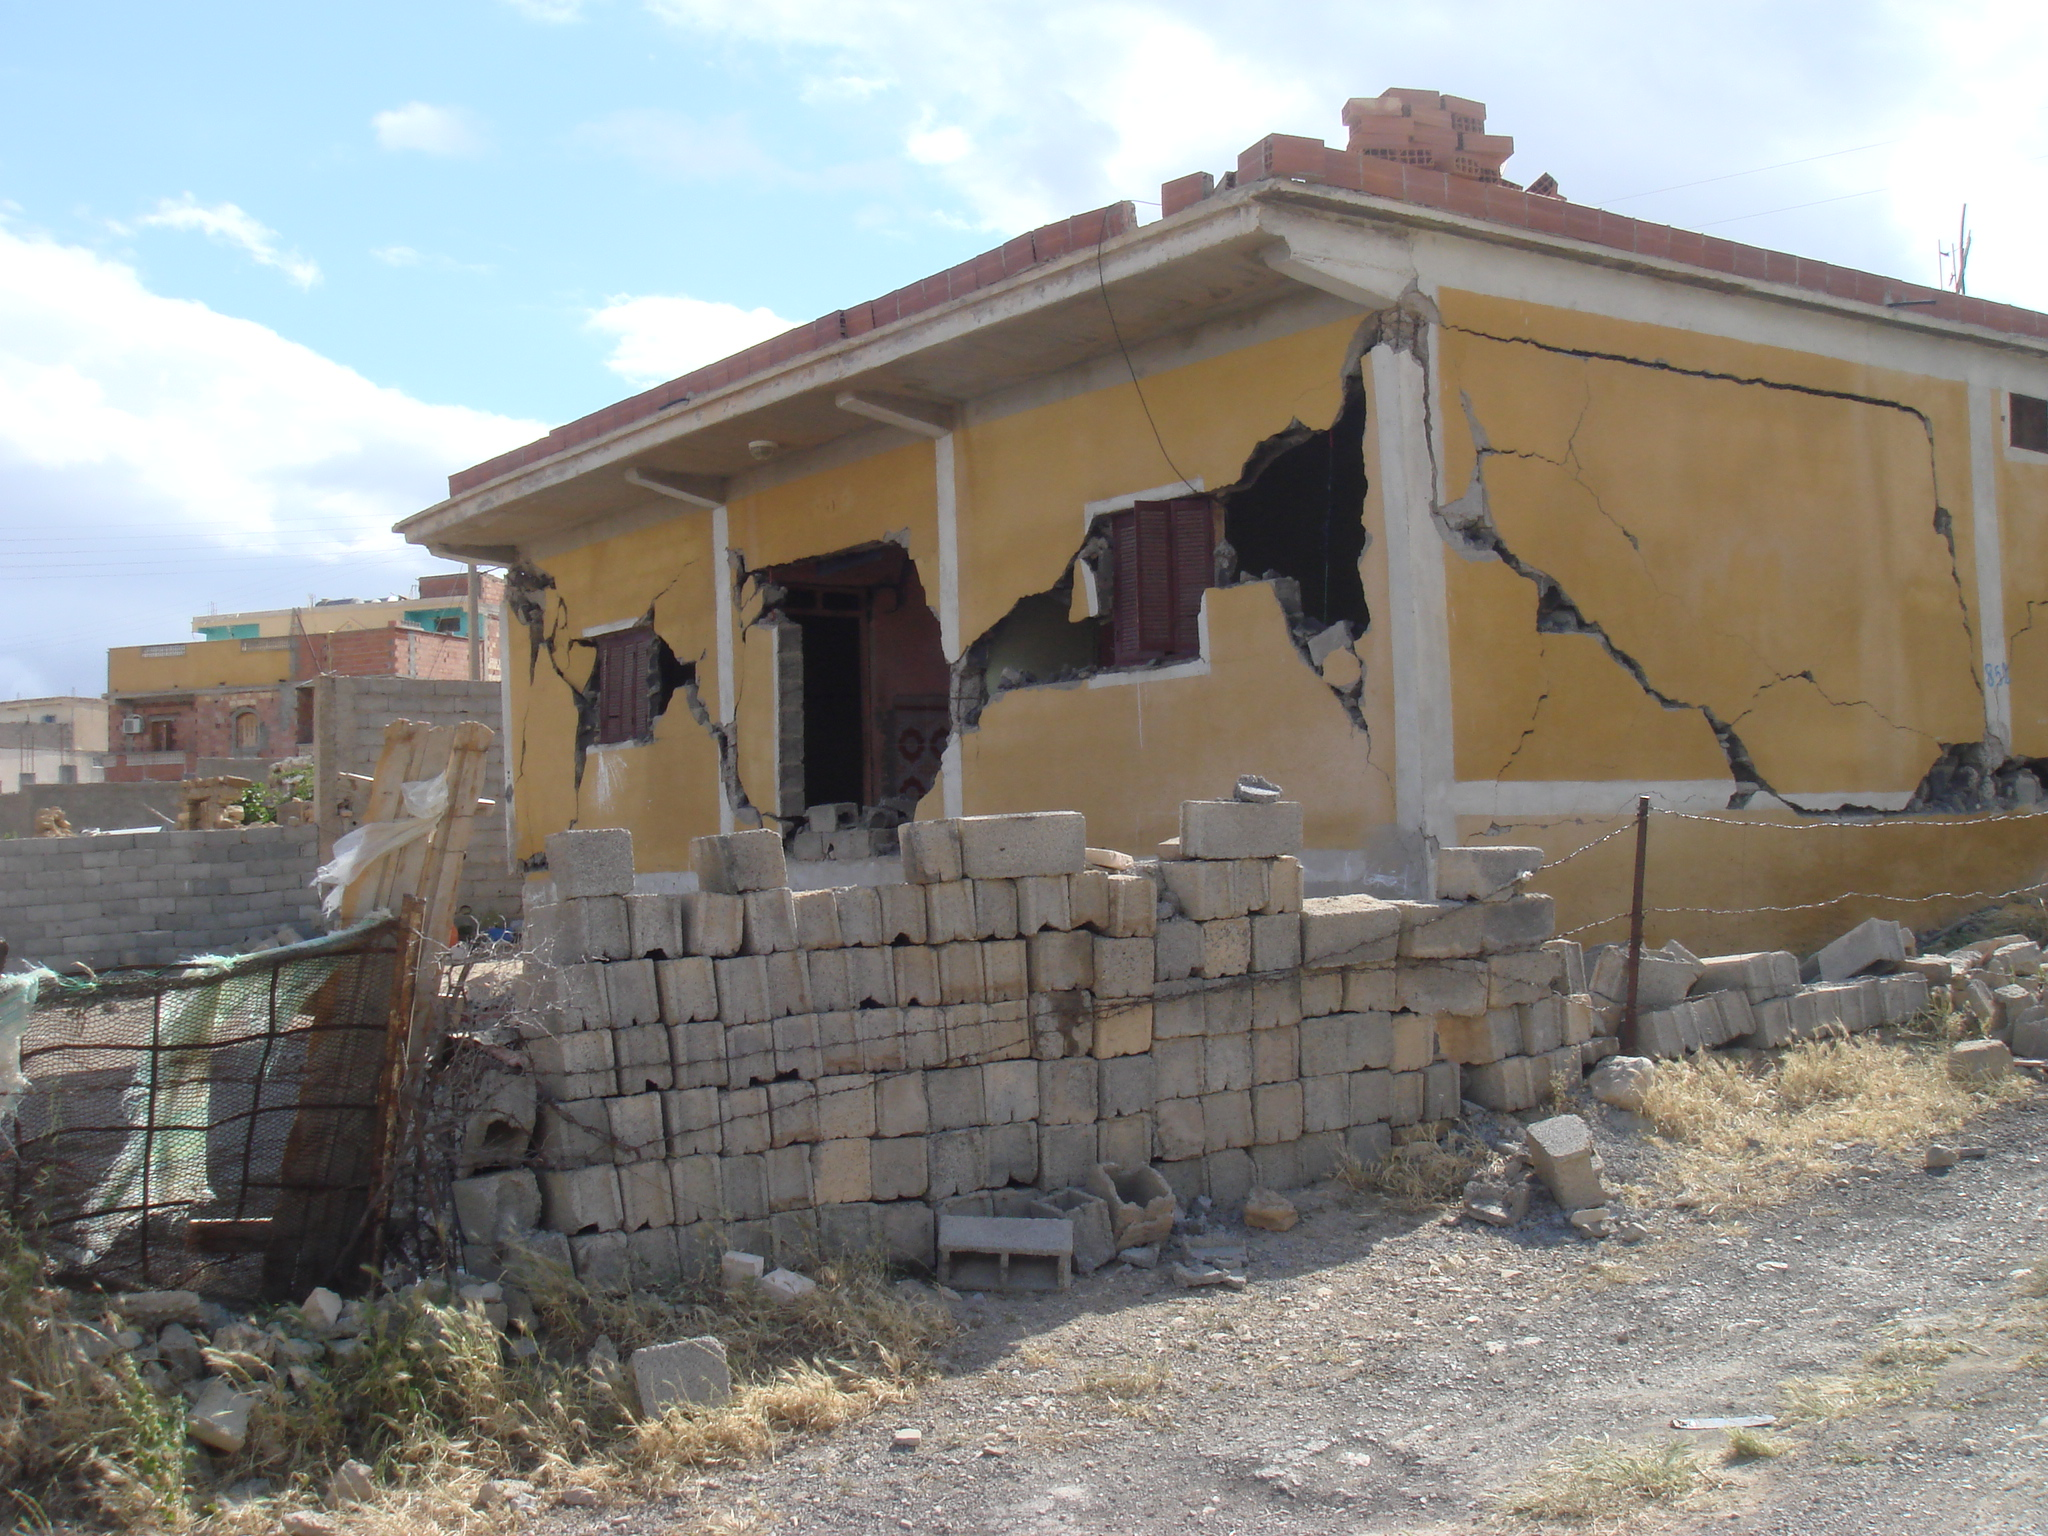 RC frame damage after the 2010 M'sila earthquake (credit: Mohammed Farsi)